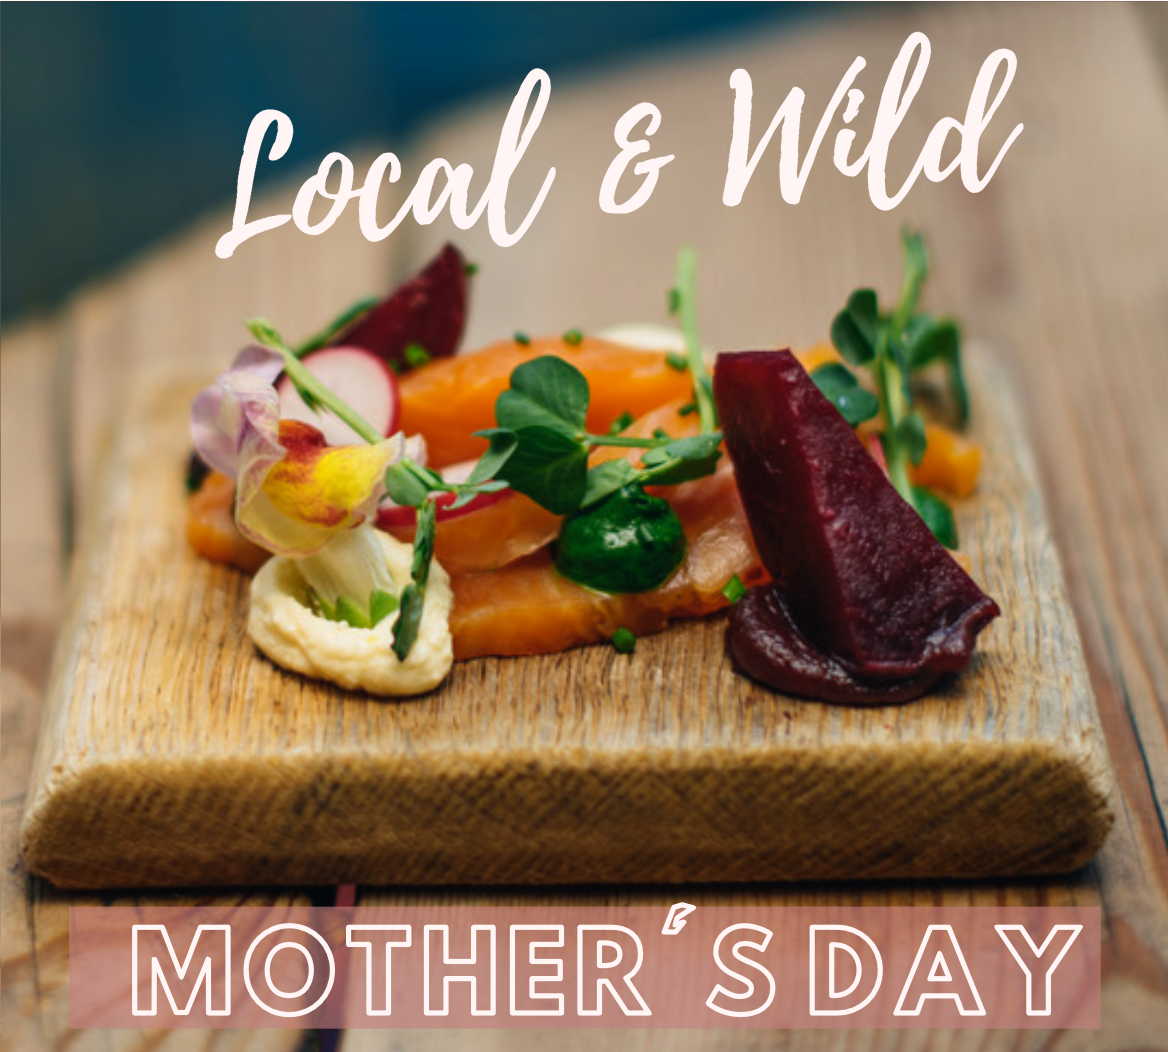 Mother's Day at Rabbit